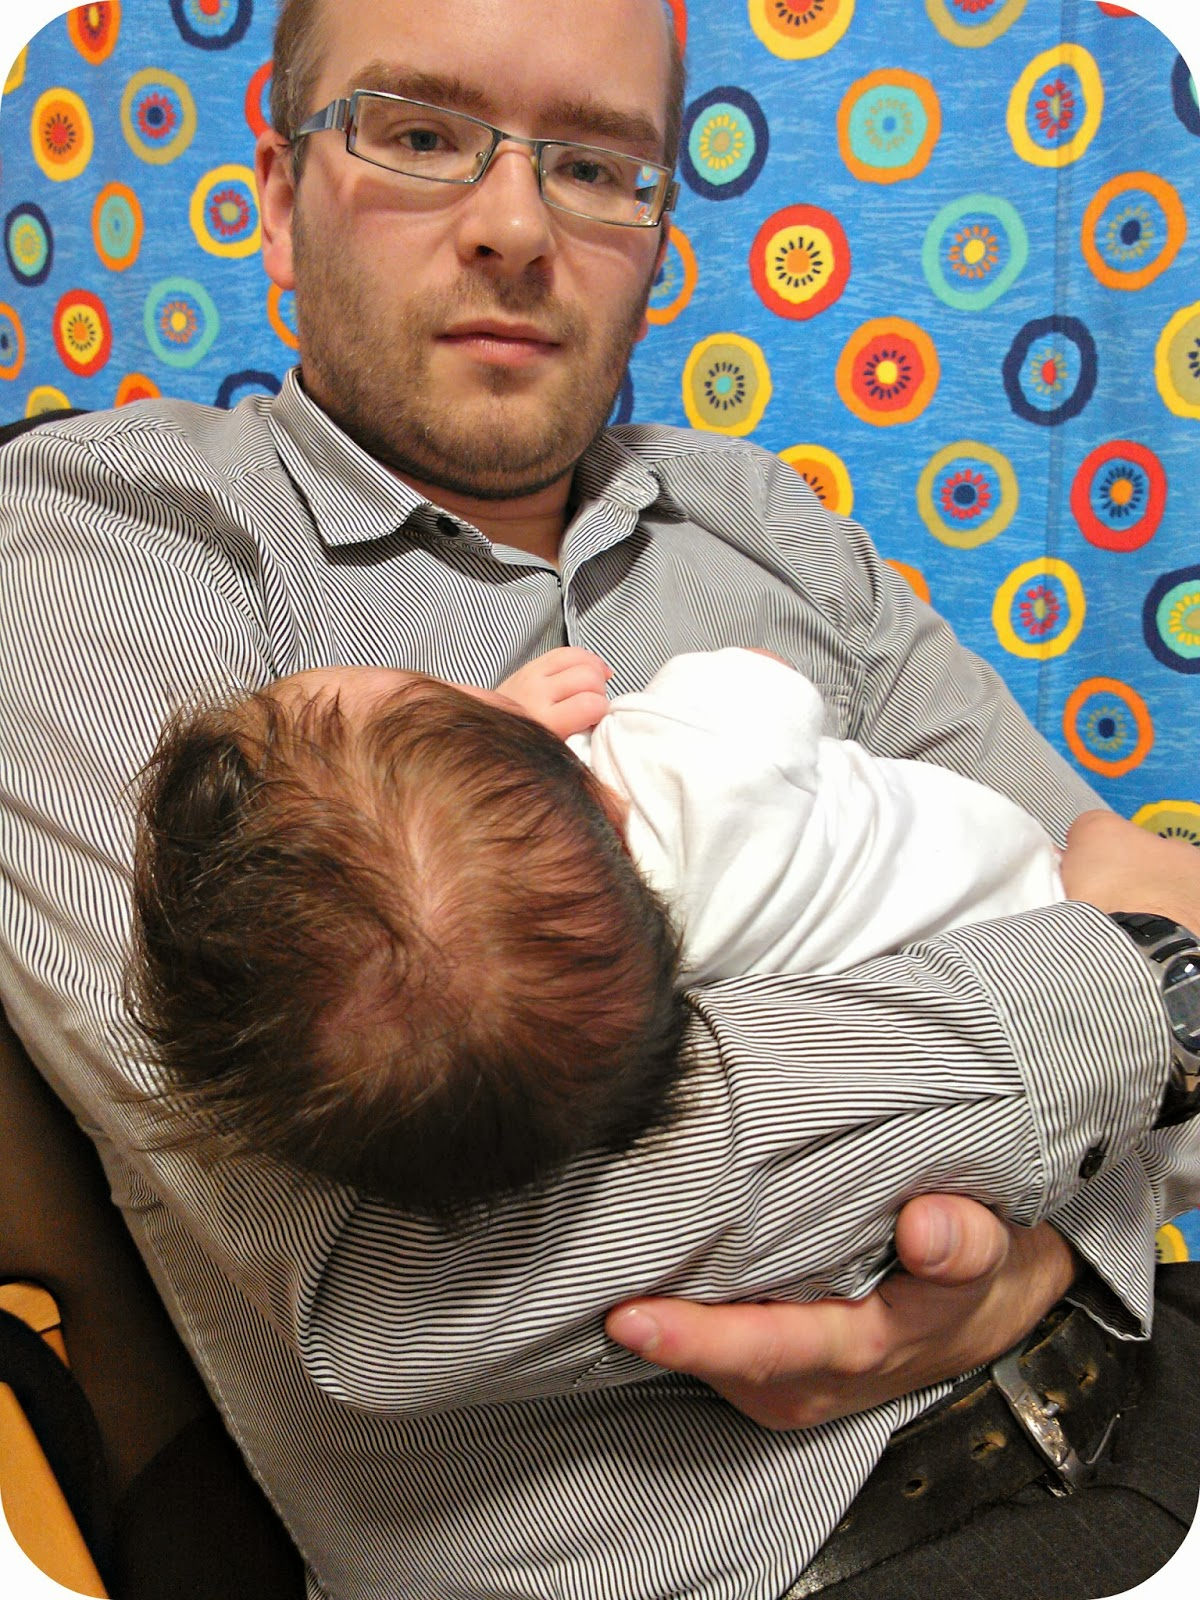 LM and her Daddy waiting at the hospital floppy larynx laryngomalacia